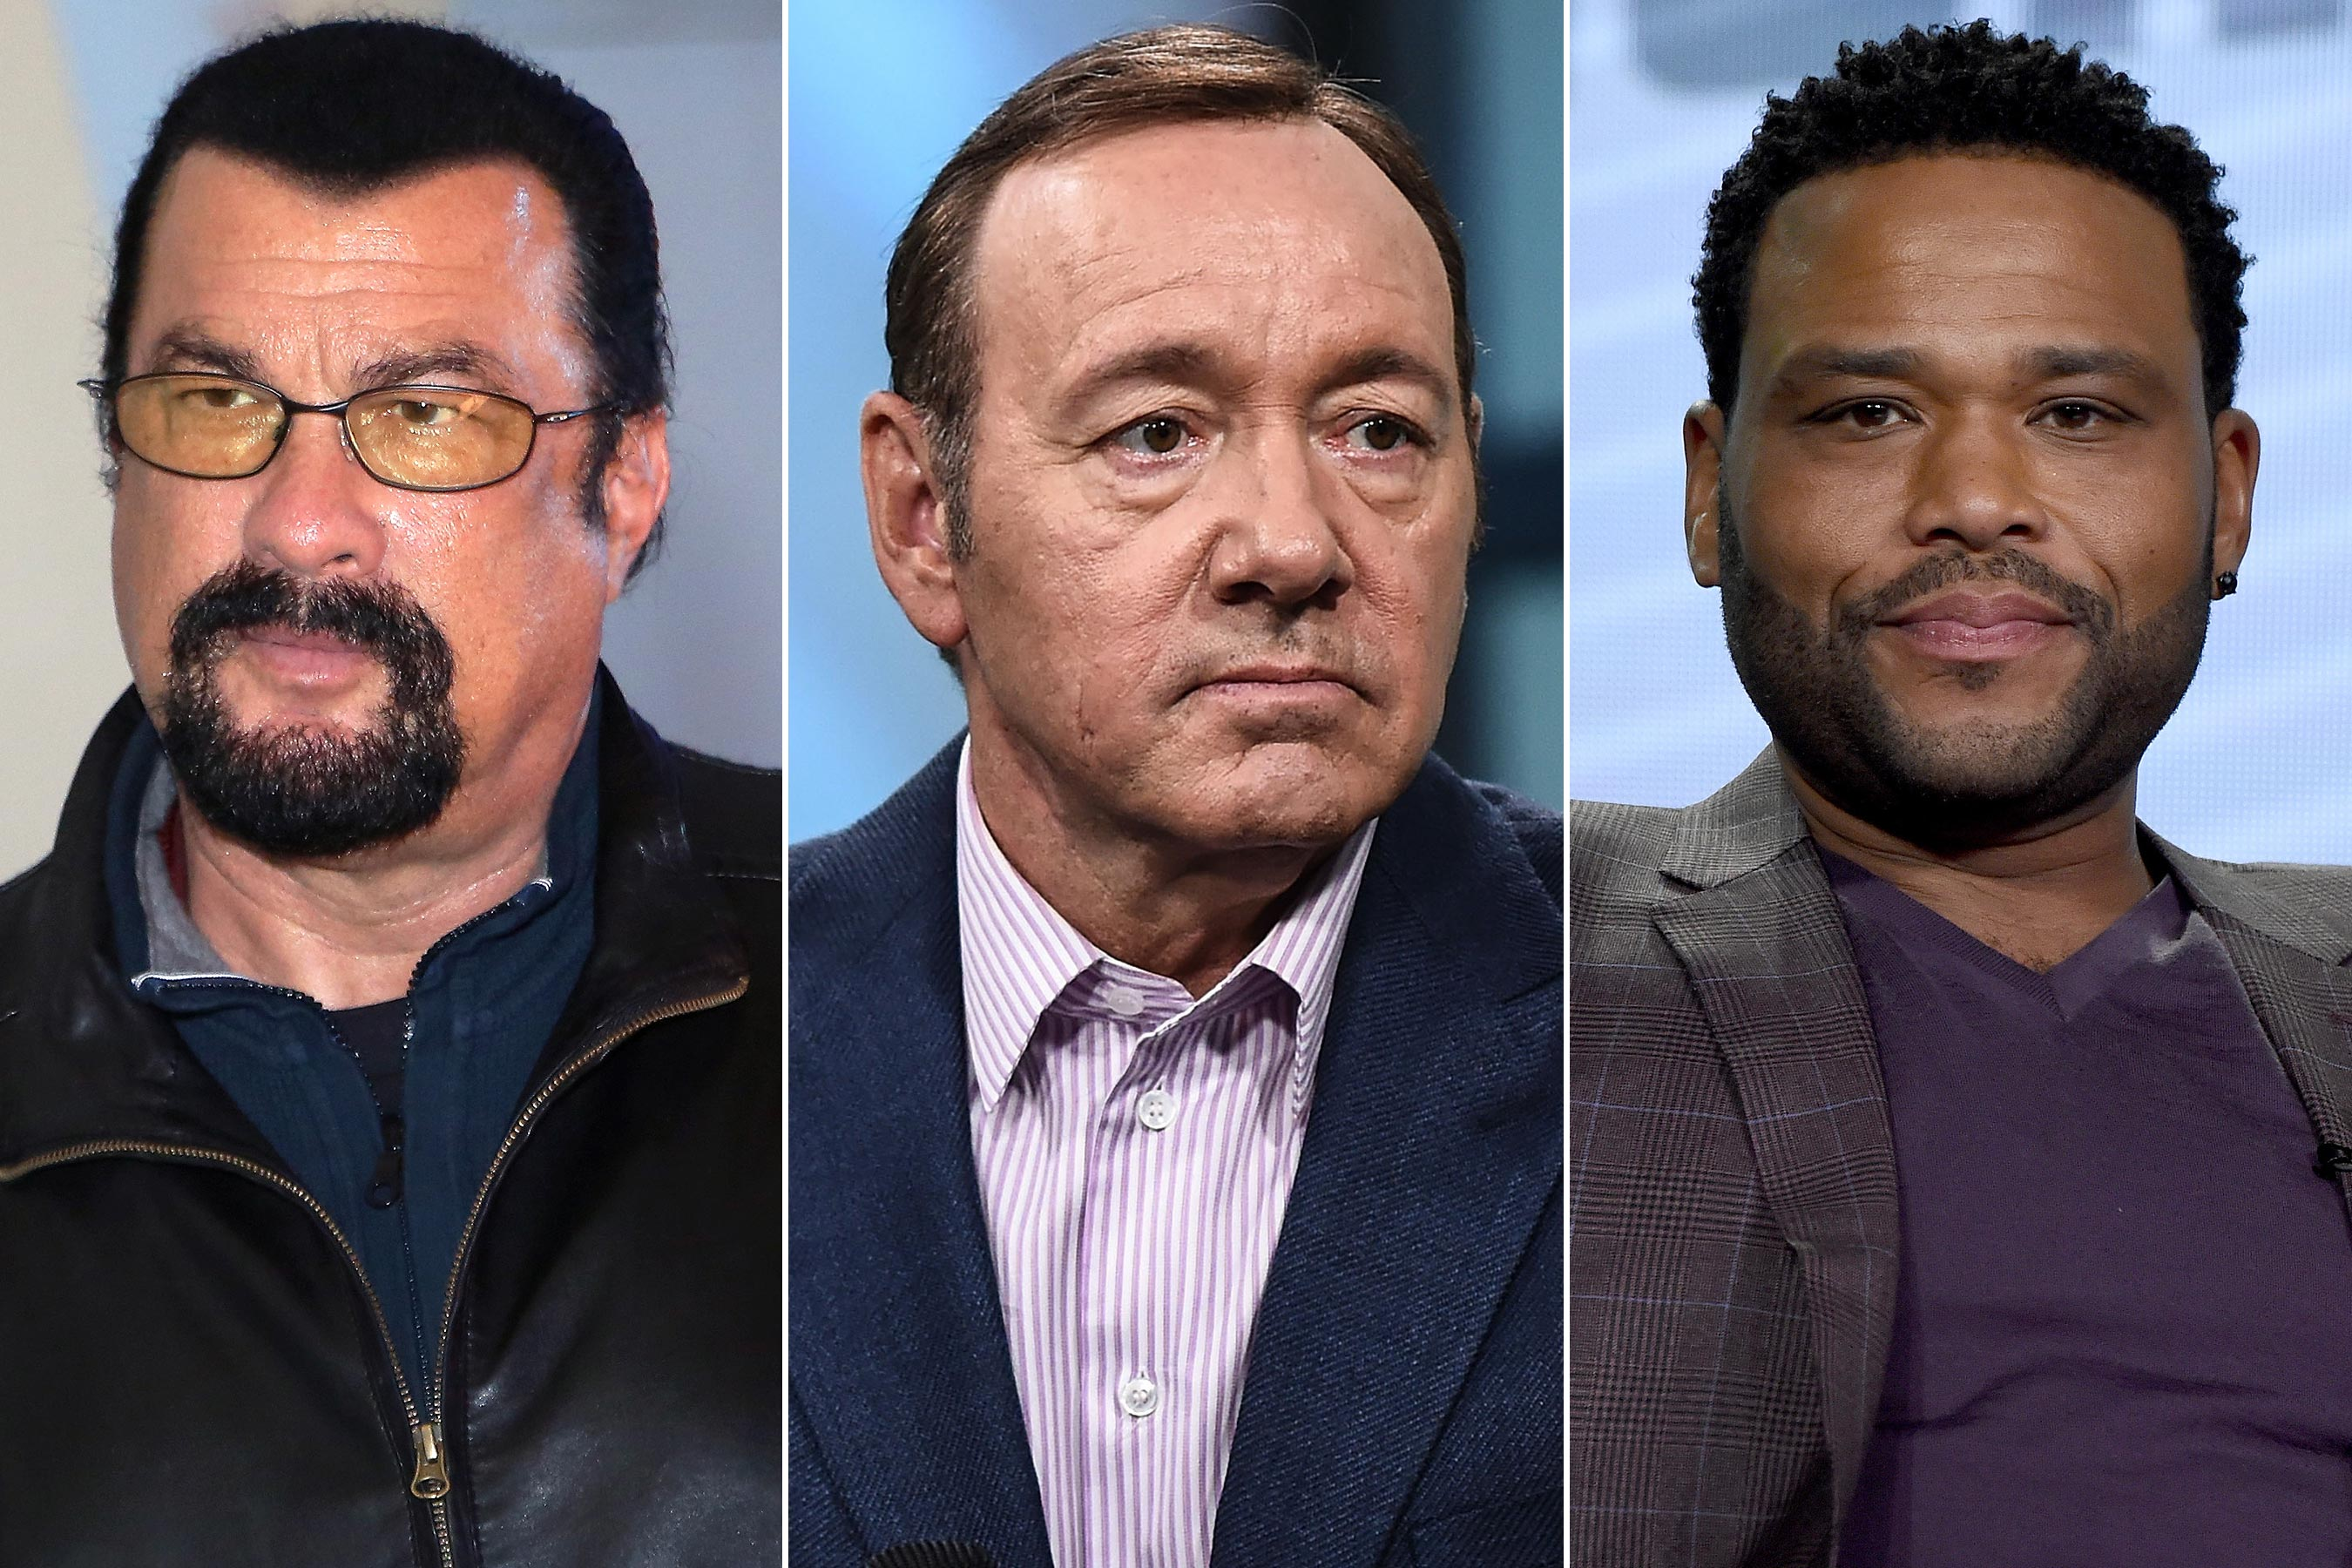 Kevin Spacey, Steven Seagal and Anthony Anderson Won't Face Charges for Alleged Sexual Assaults